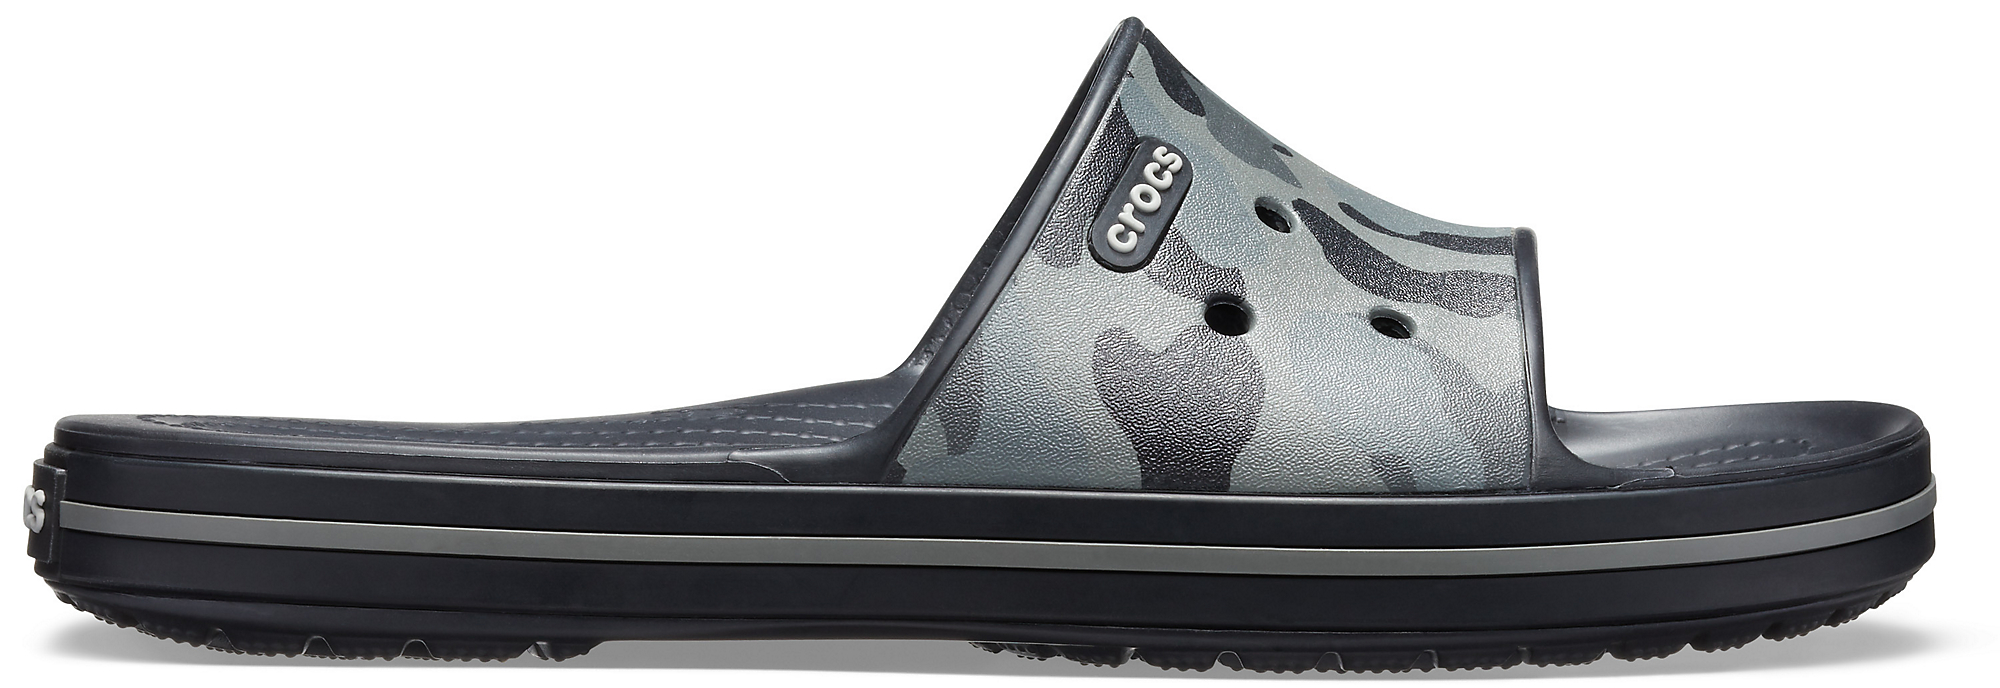 Papuci Crocs Crocband III Seasonal Graphic Slide-image